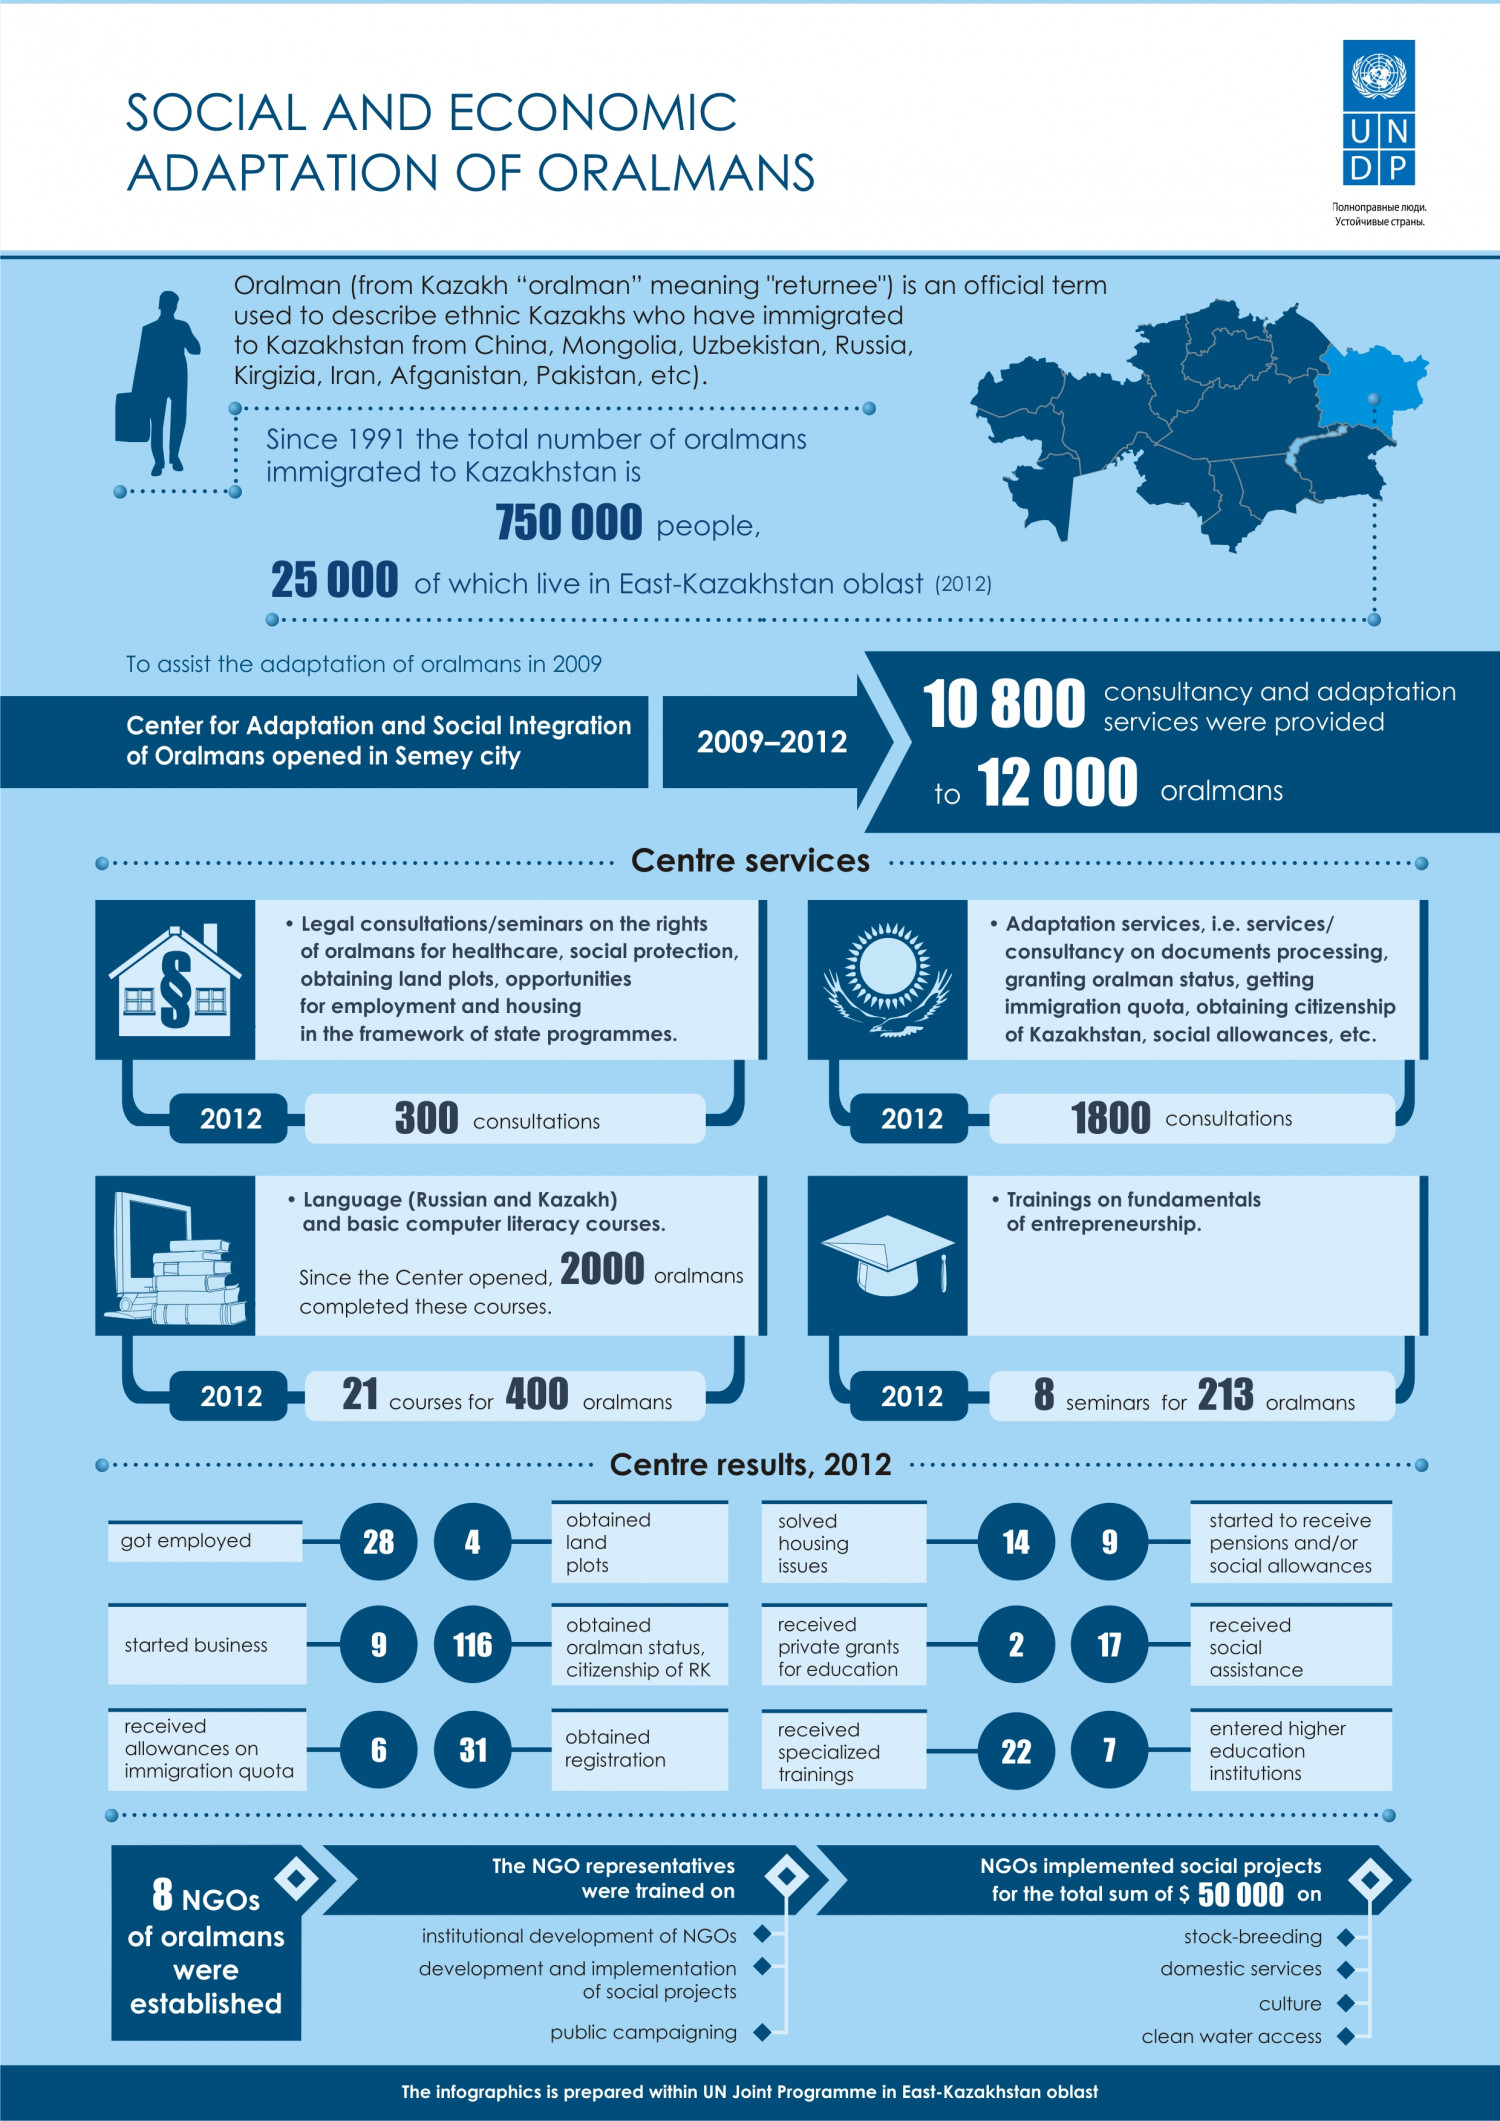 Adaptation and Social Integration of Oralmans Infographic